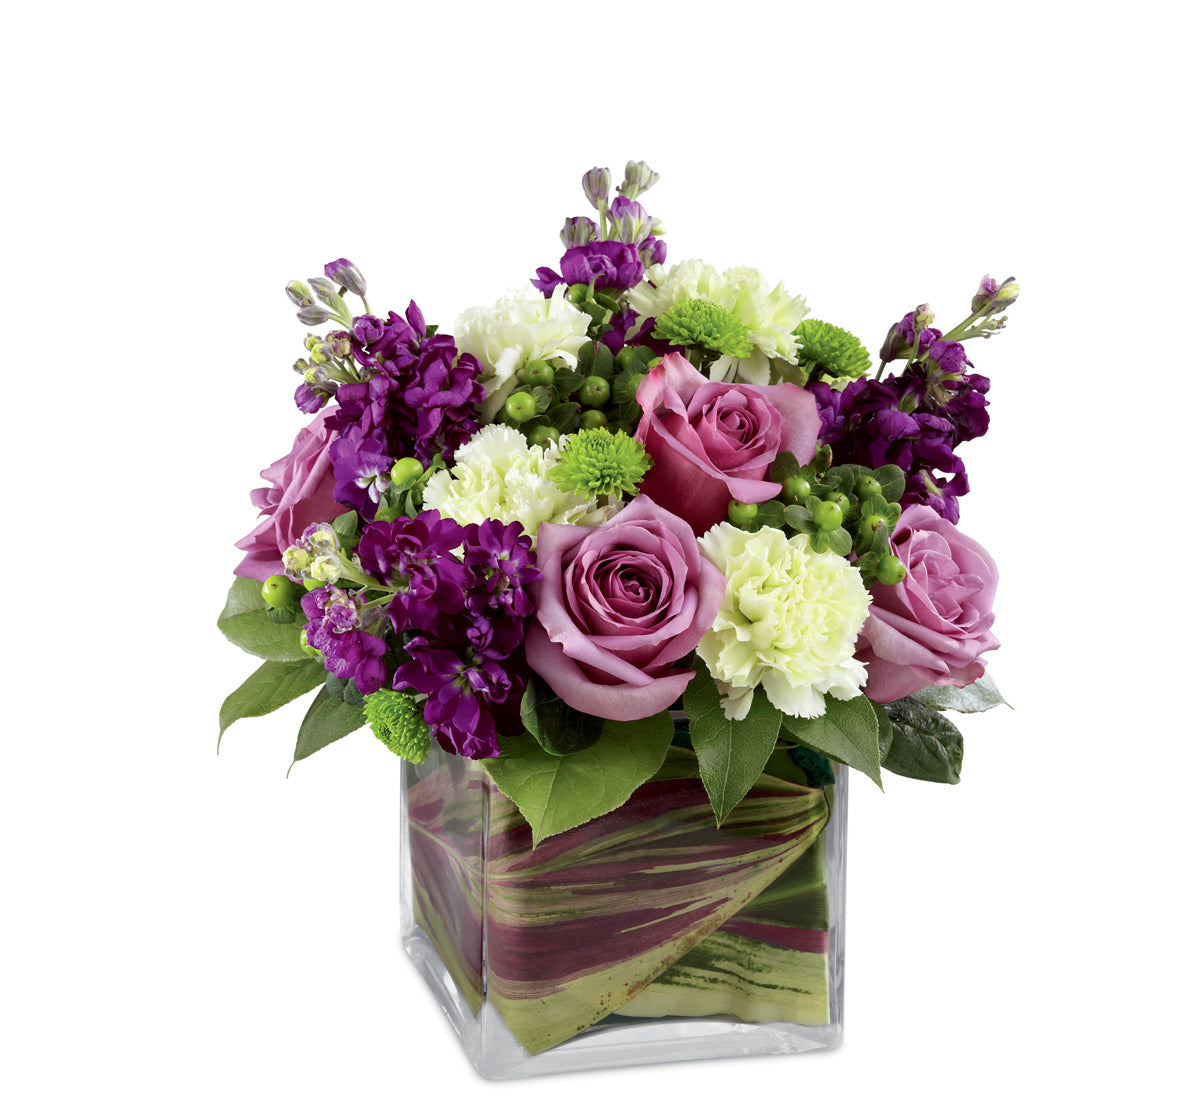 Gta florist order flower delivery online your local toronto florist ftd beloved bouquet izmirmasajfo